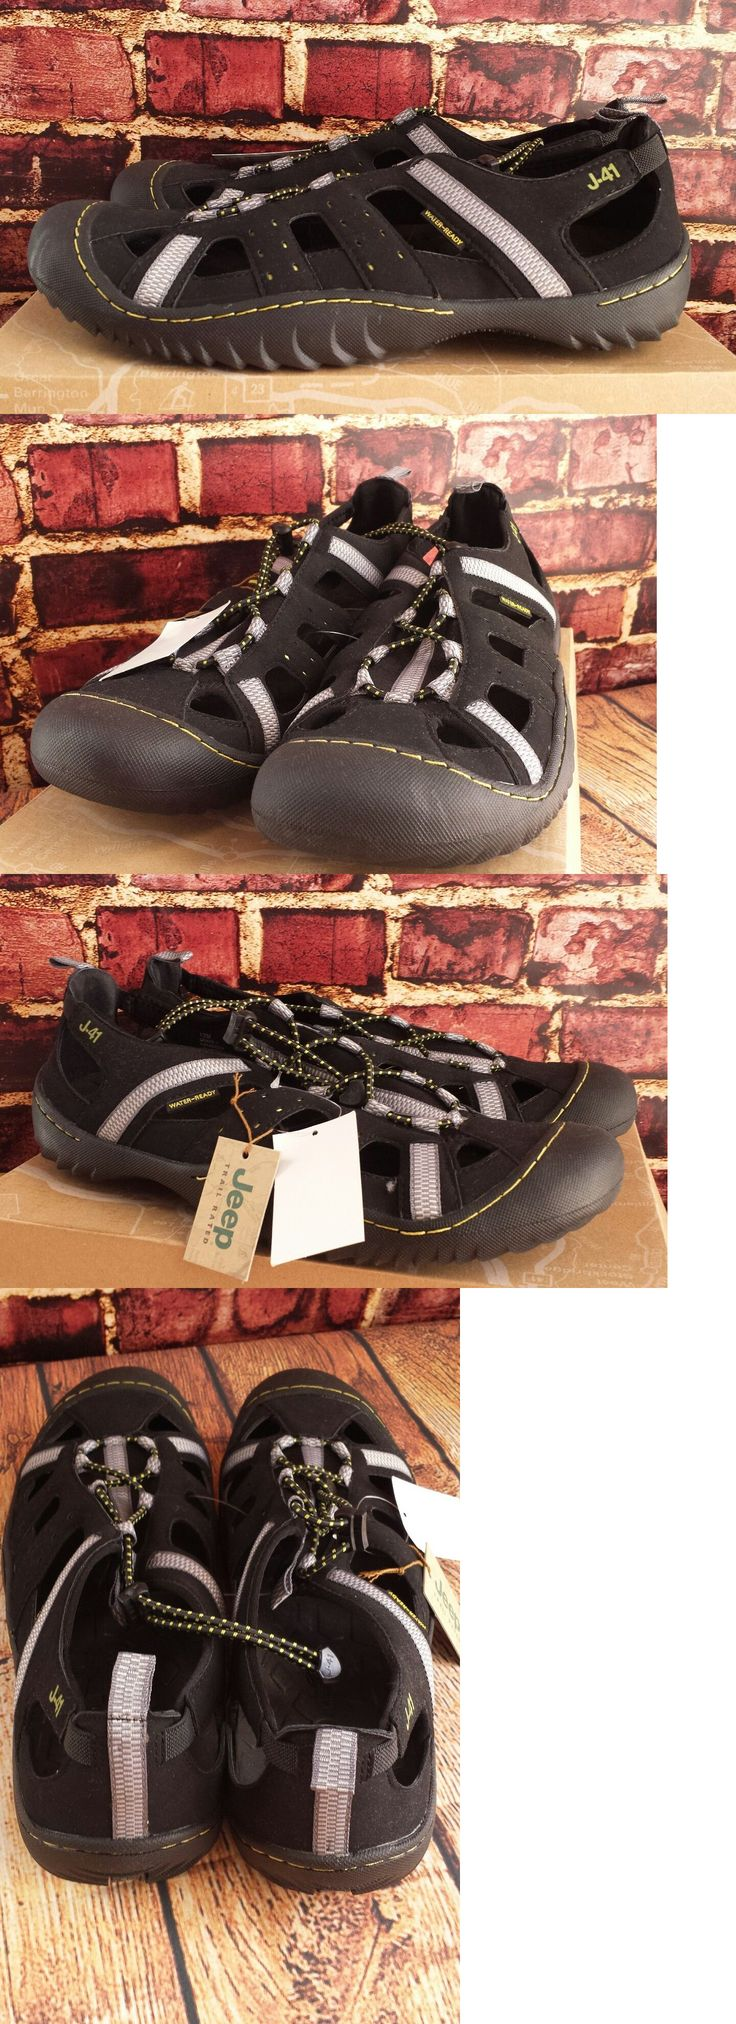 Men 159144: J-41 Jeep Trail Rated Groove Ii Black Kiwi Sport Sandals Water Shoes Size 12 -> BUY IT NOW ONLY: $44.95 on eBay!